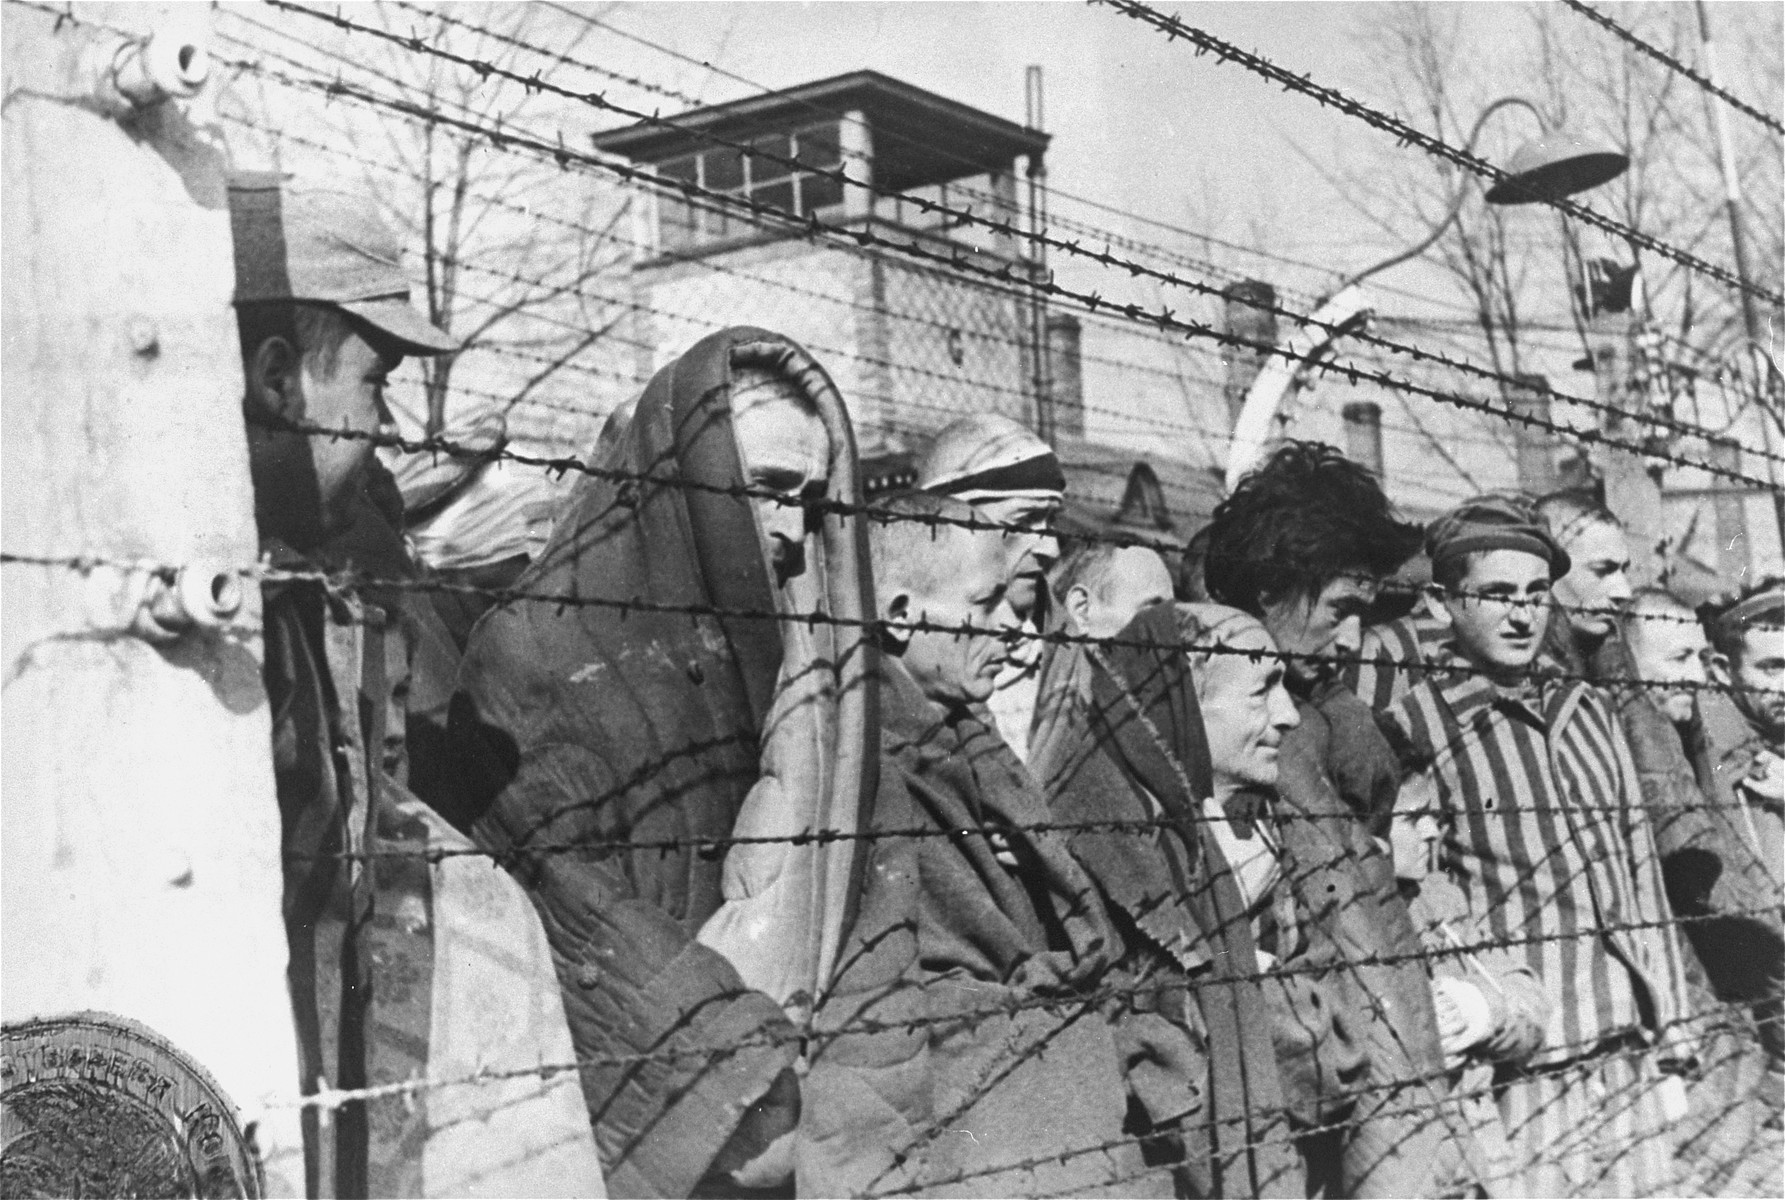 Survivors of Auschwitz peer through the barbed wire of the camp.  STILL PHOTOGRAPH FROM THE SOVIET FILM of the liberation of Auschwitz, taken by the film unit of the First Ukrainian Front.